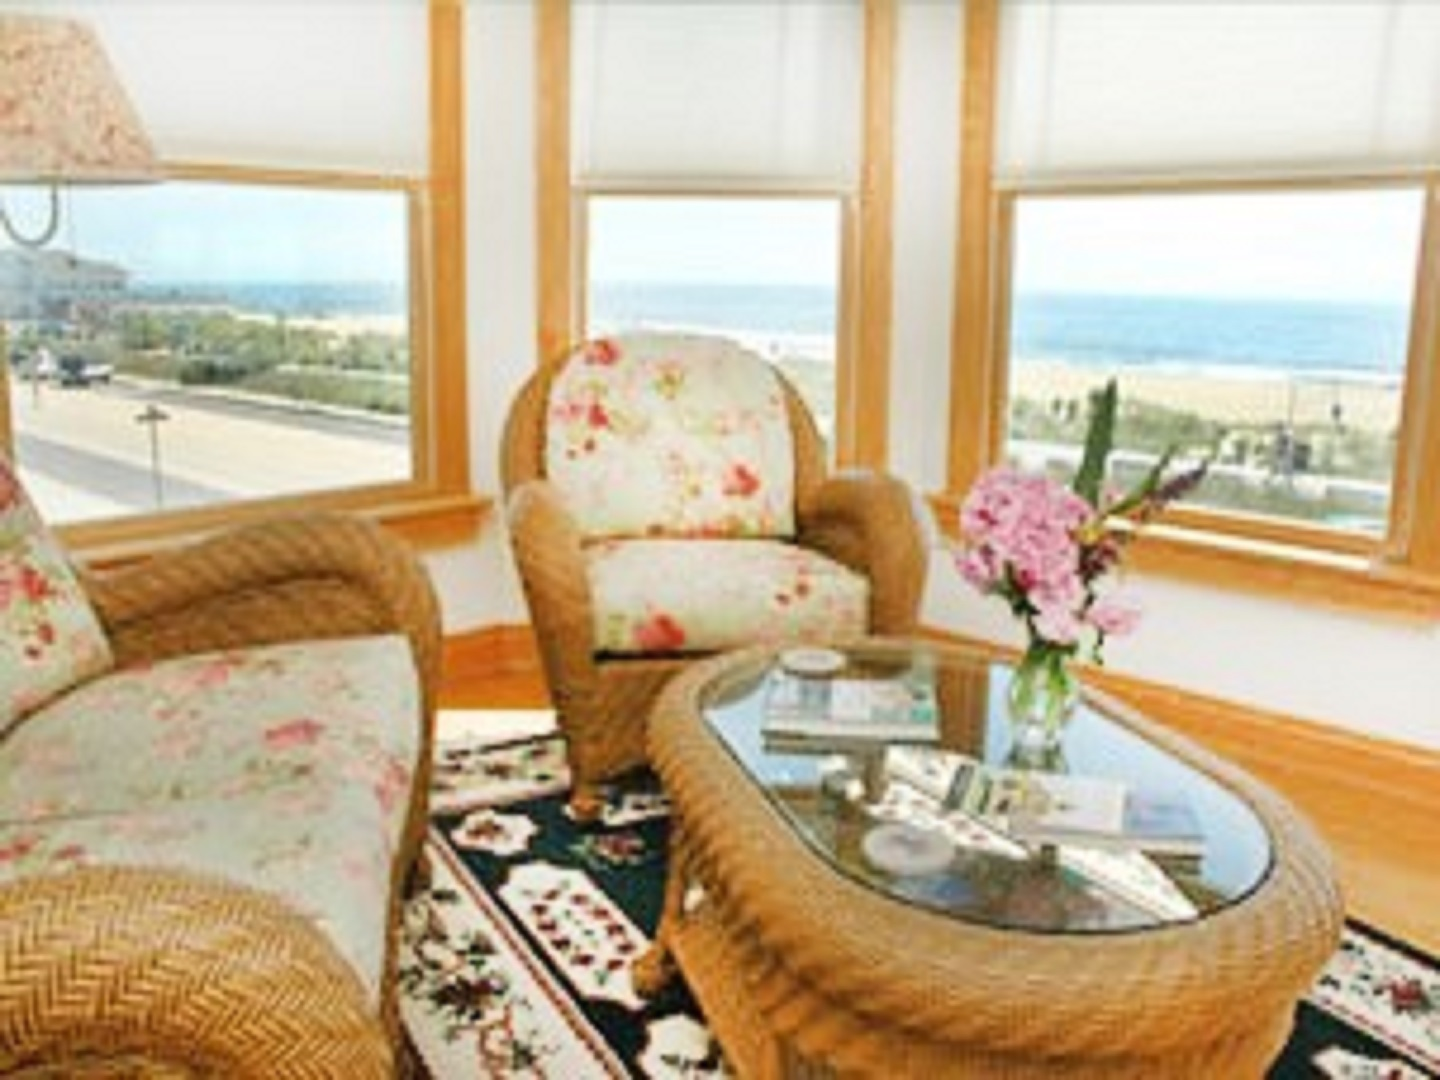 A view of a living room at 7 OCEAN AVENUE BED & BREAKFAST.